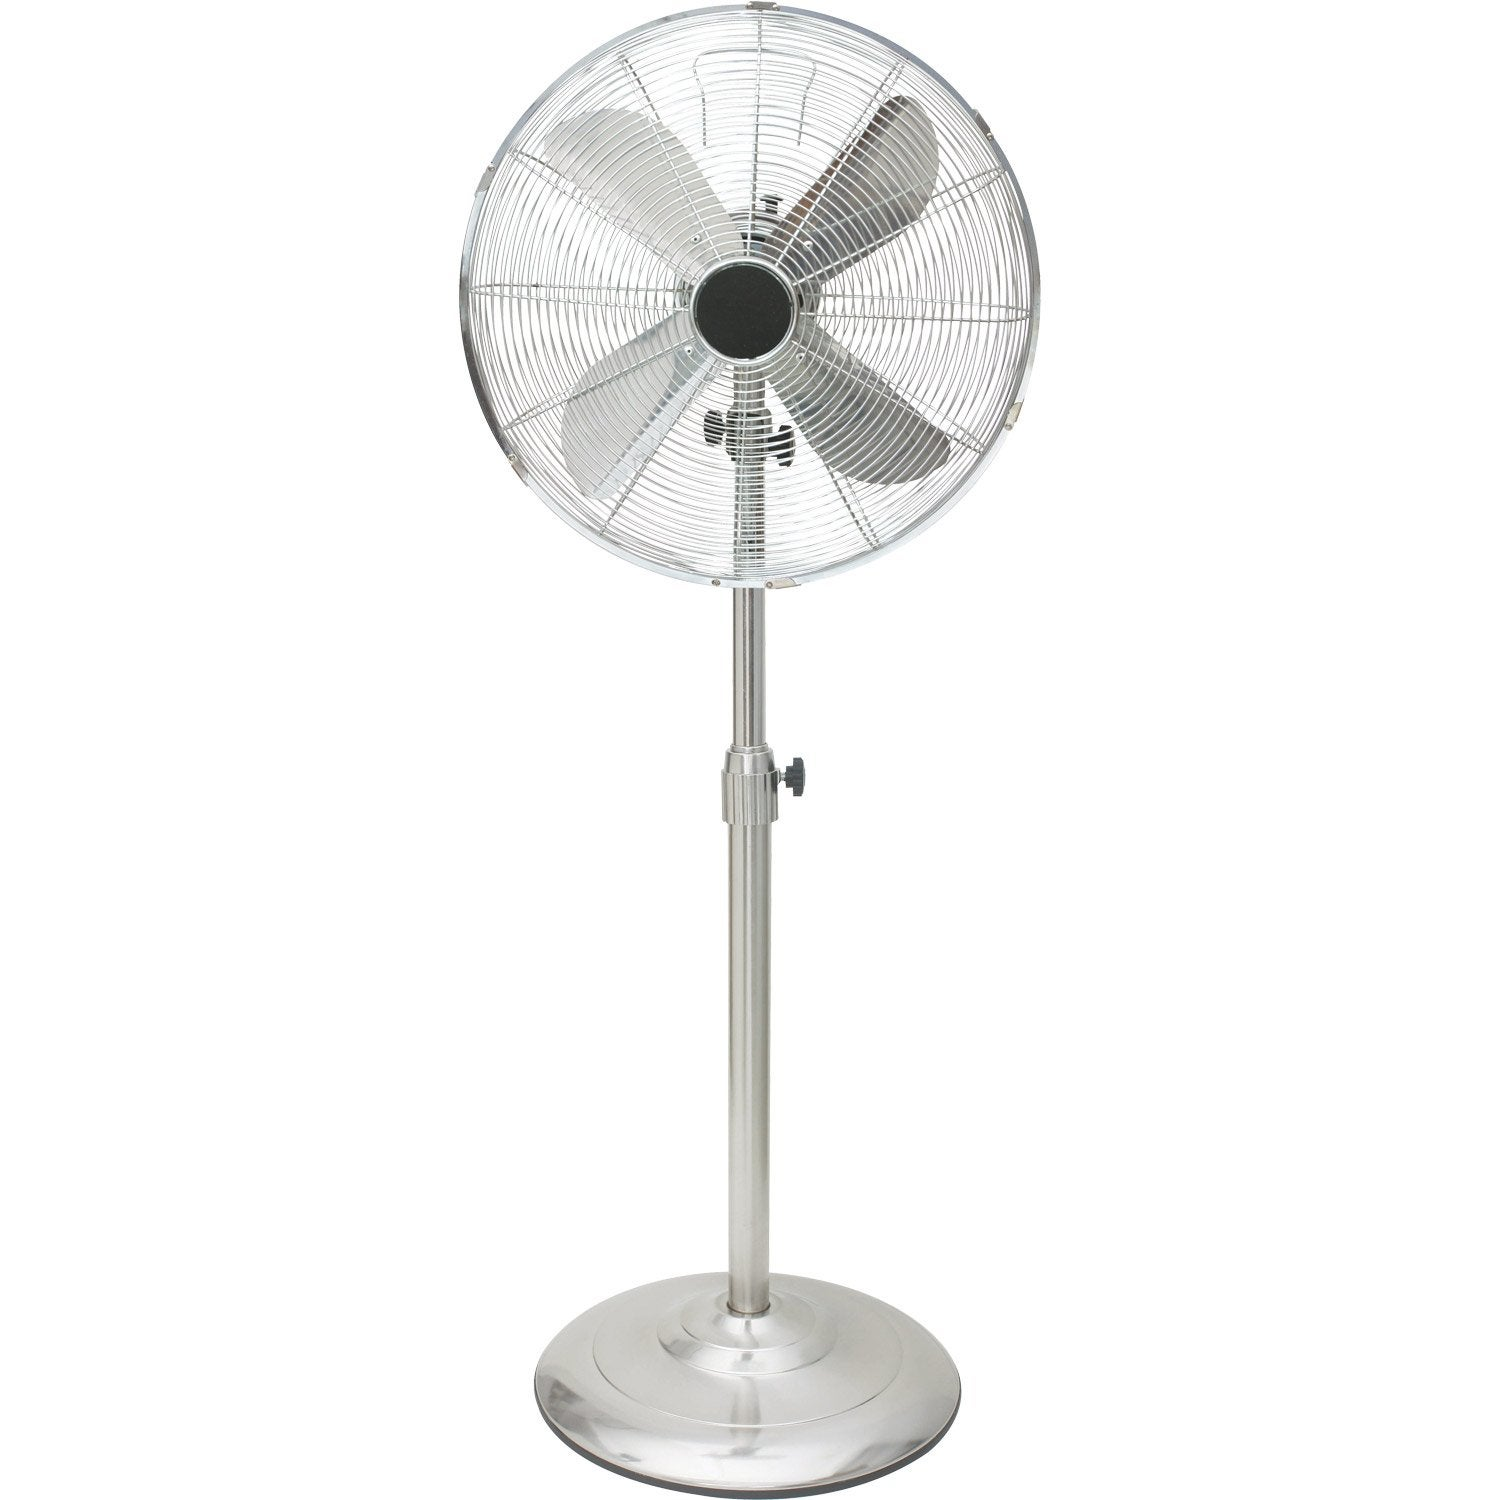 Ventilateur sur pied equation cooma 3 d 40 cm 55 w - Ventilateur de plafond leroy merlin ...